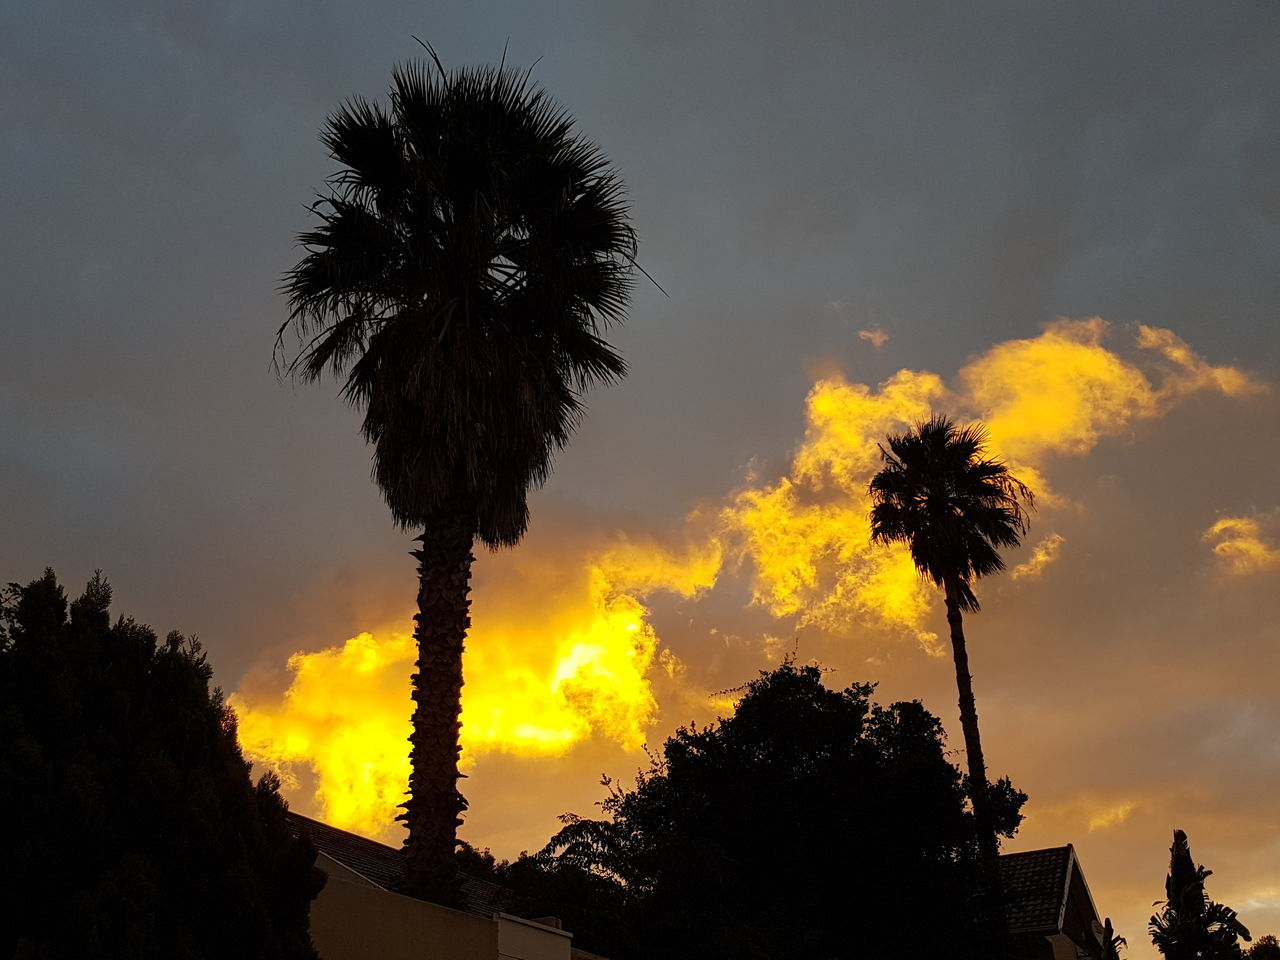 palm tree, tree, sky, silhouette, low angle view, cloud - sky, sunset, beauty in nature, tree trunk, growth, no people, nature, tranquility, outdoors, scenics, day